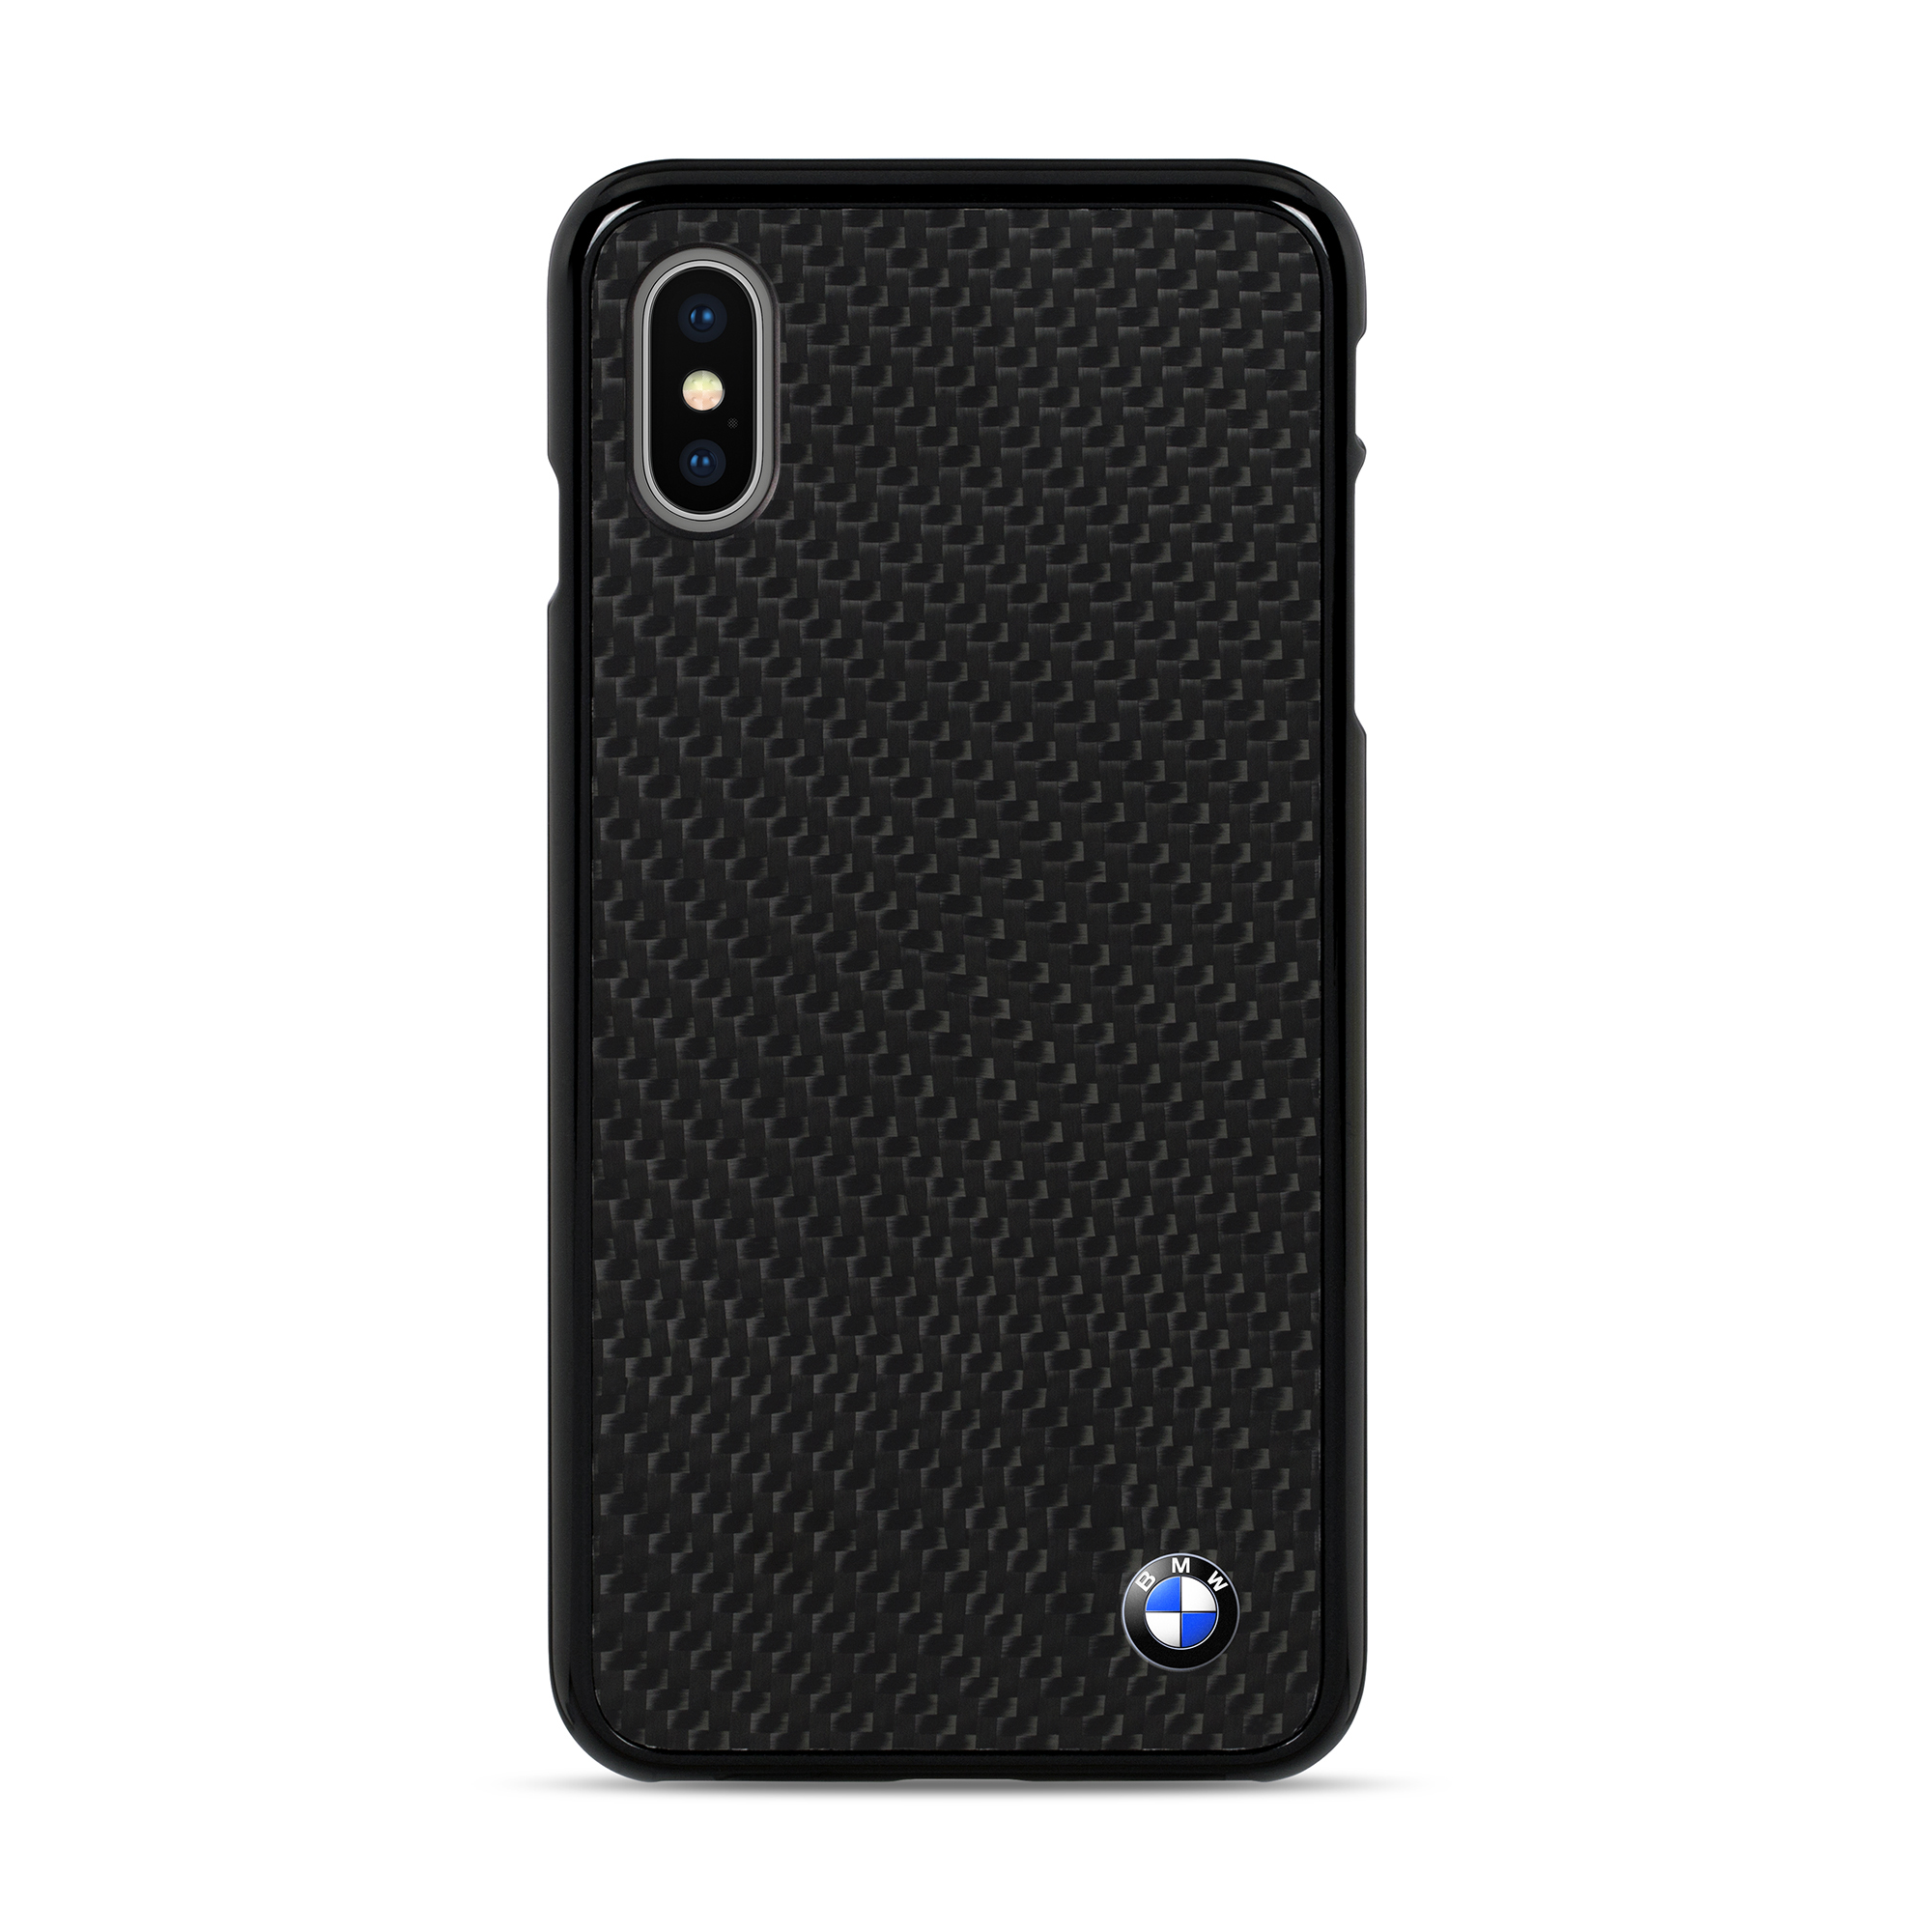 promo code 1b84d 9db5d Hybrid real carbon fibre for iPhone - 5.8 Inch Screen